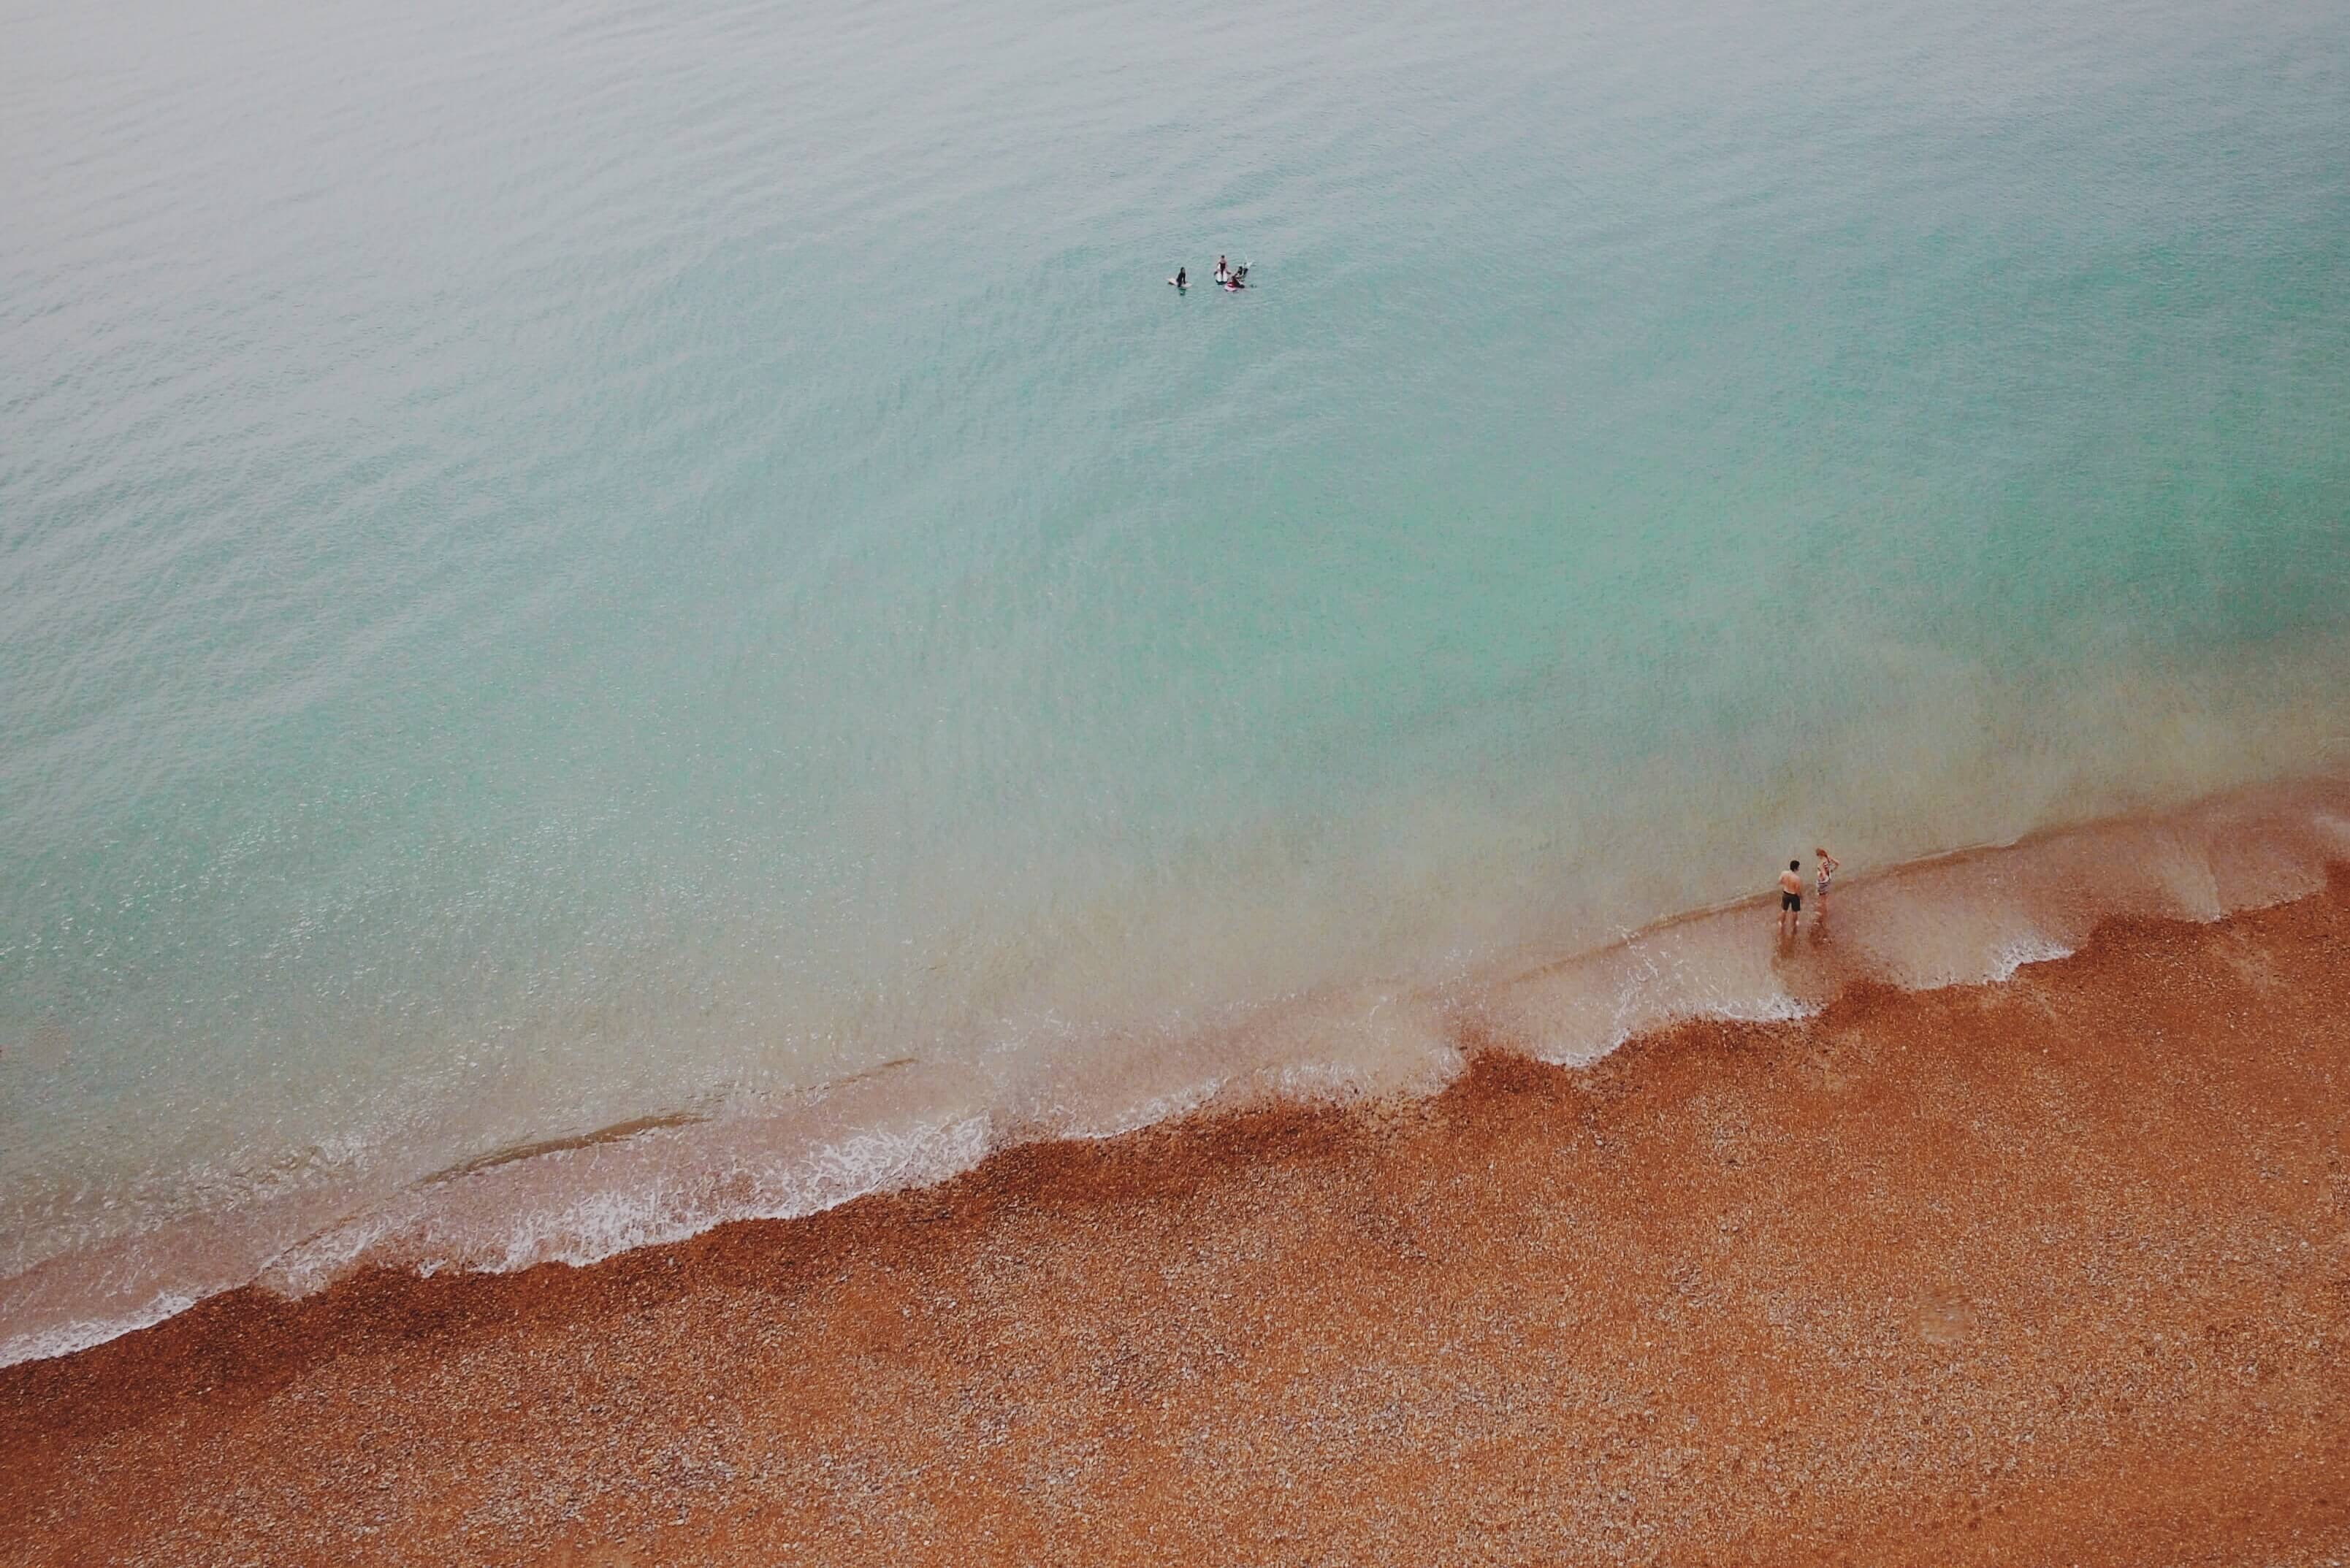 Drone view of people swimming in clear ocean washing up on red sand beach in Brighton